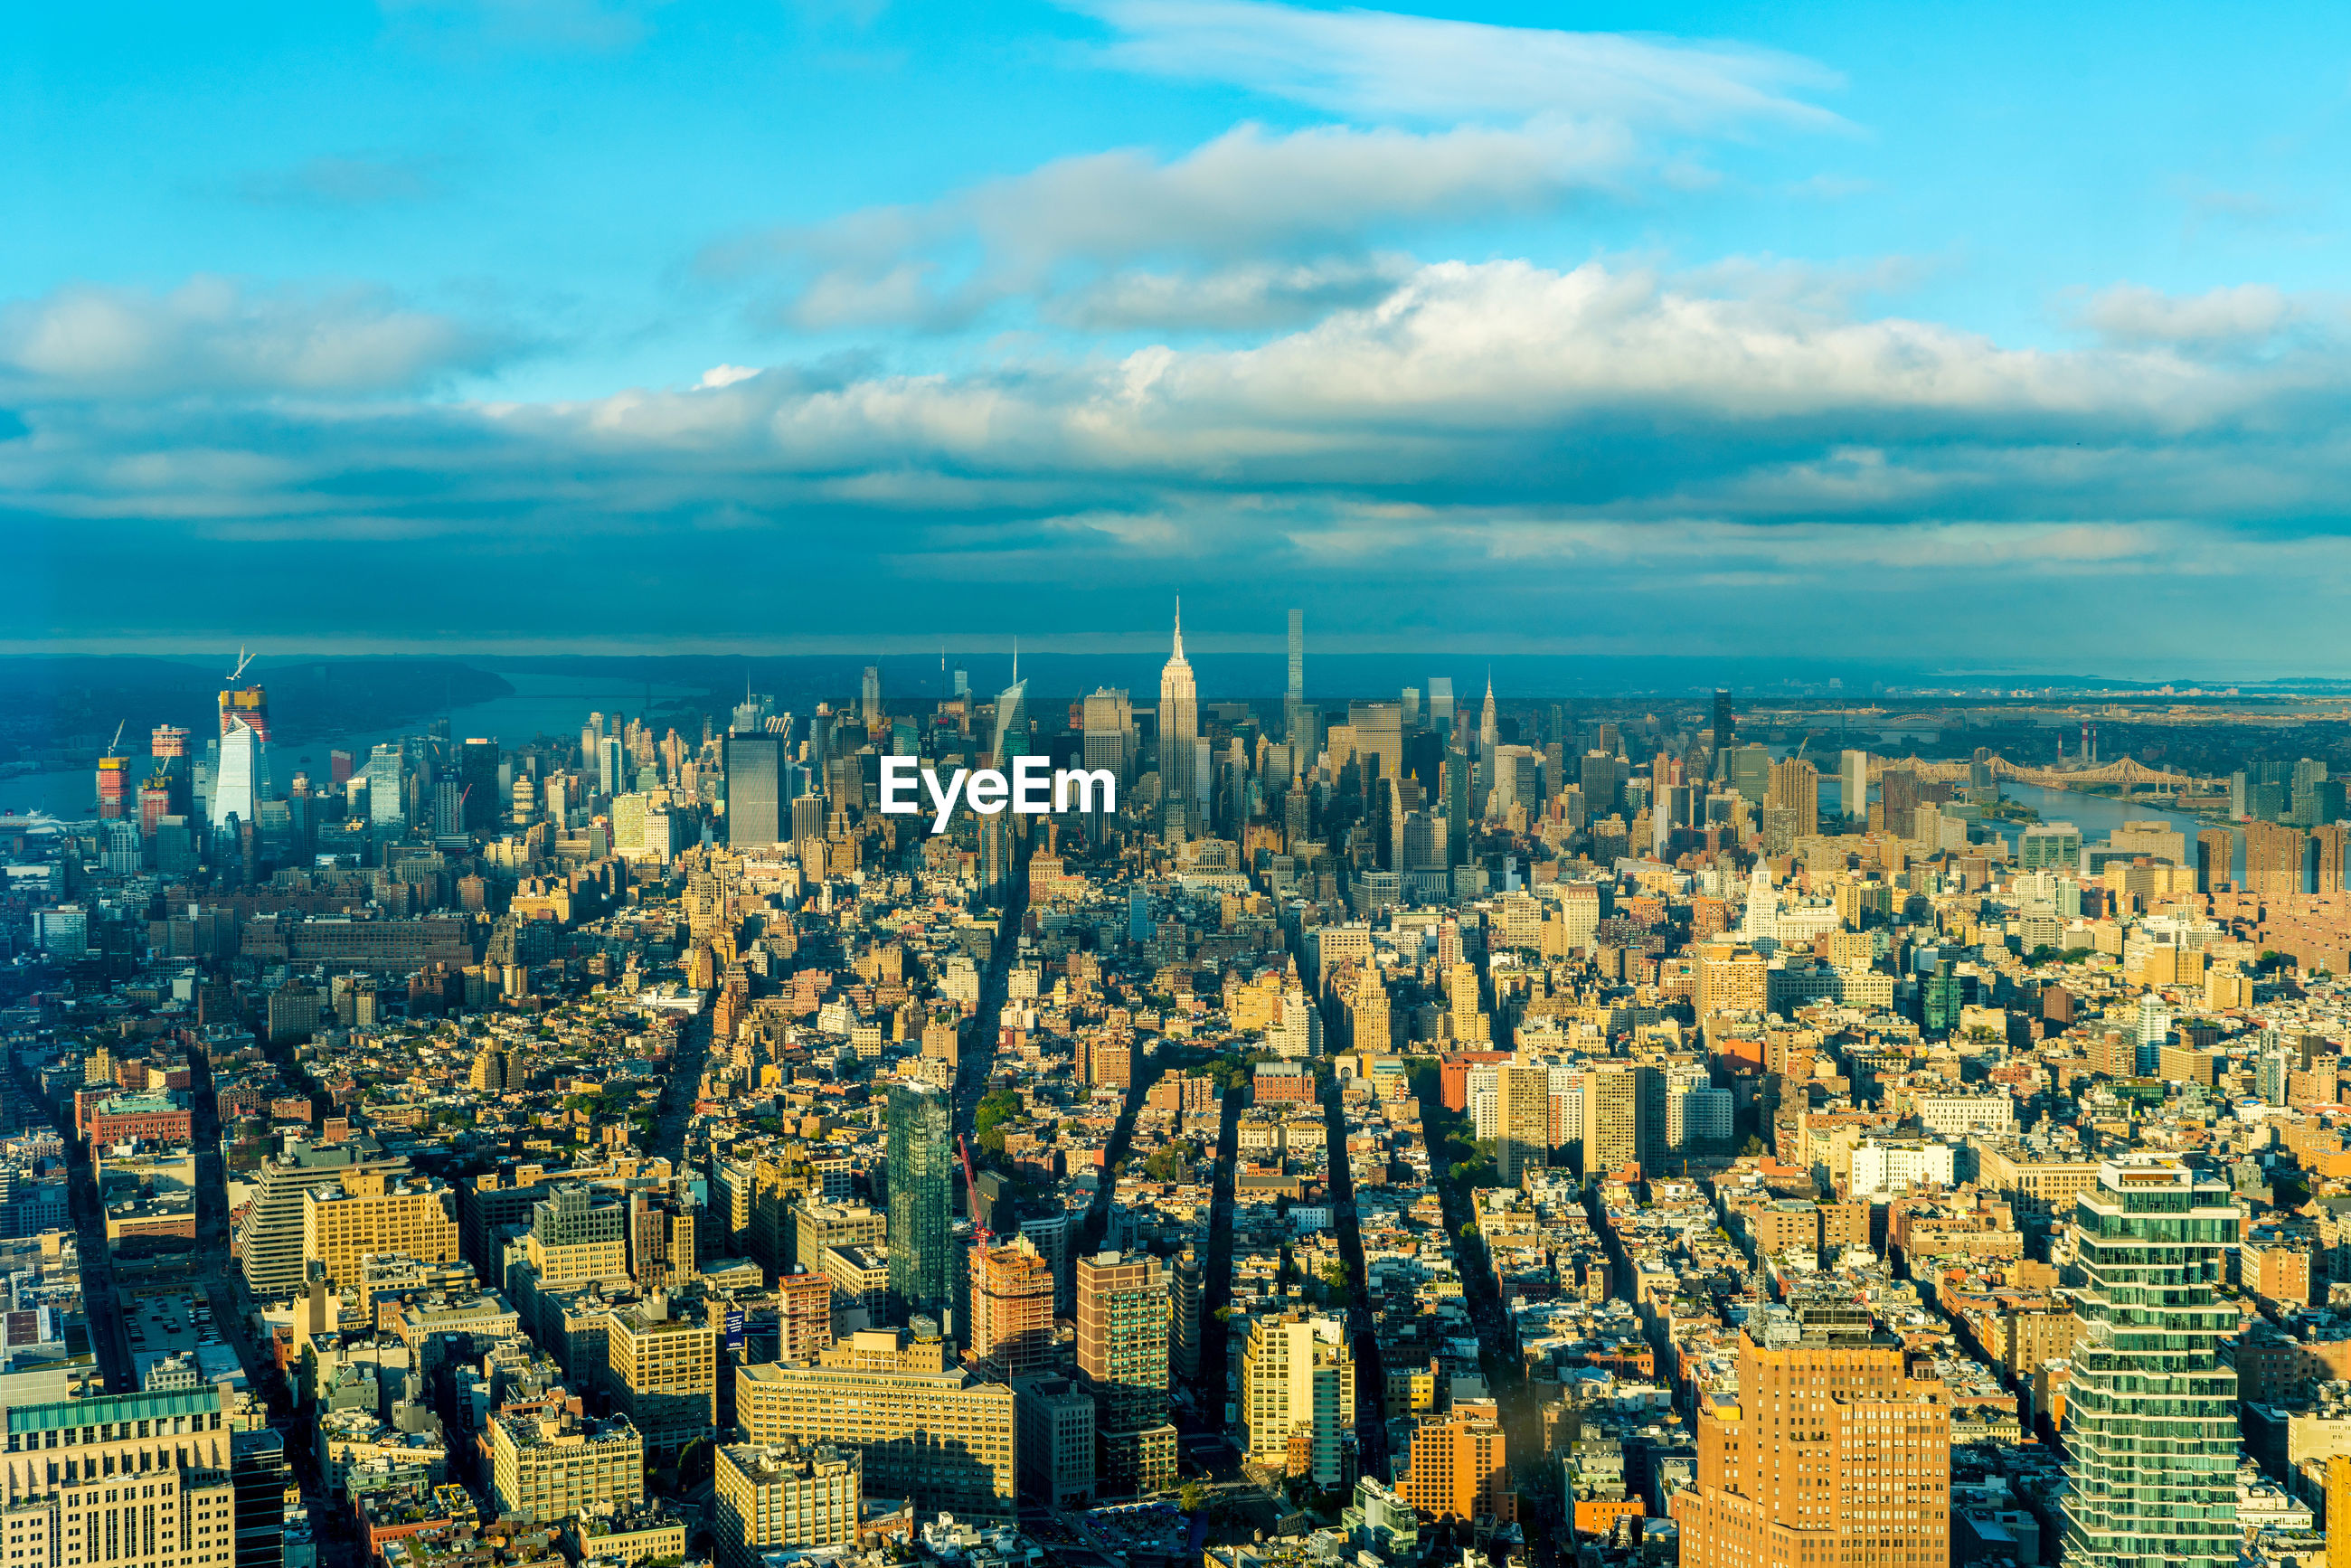 PANORAMIC SHOT OF CITYSCAPE